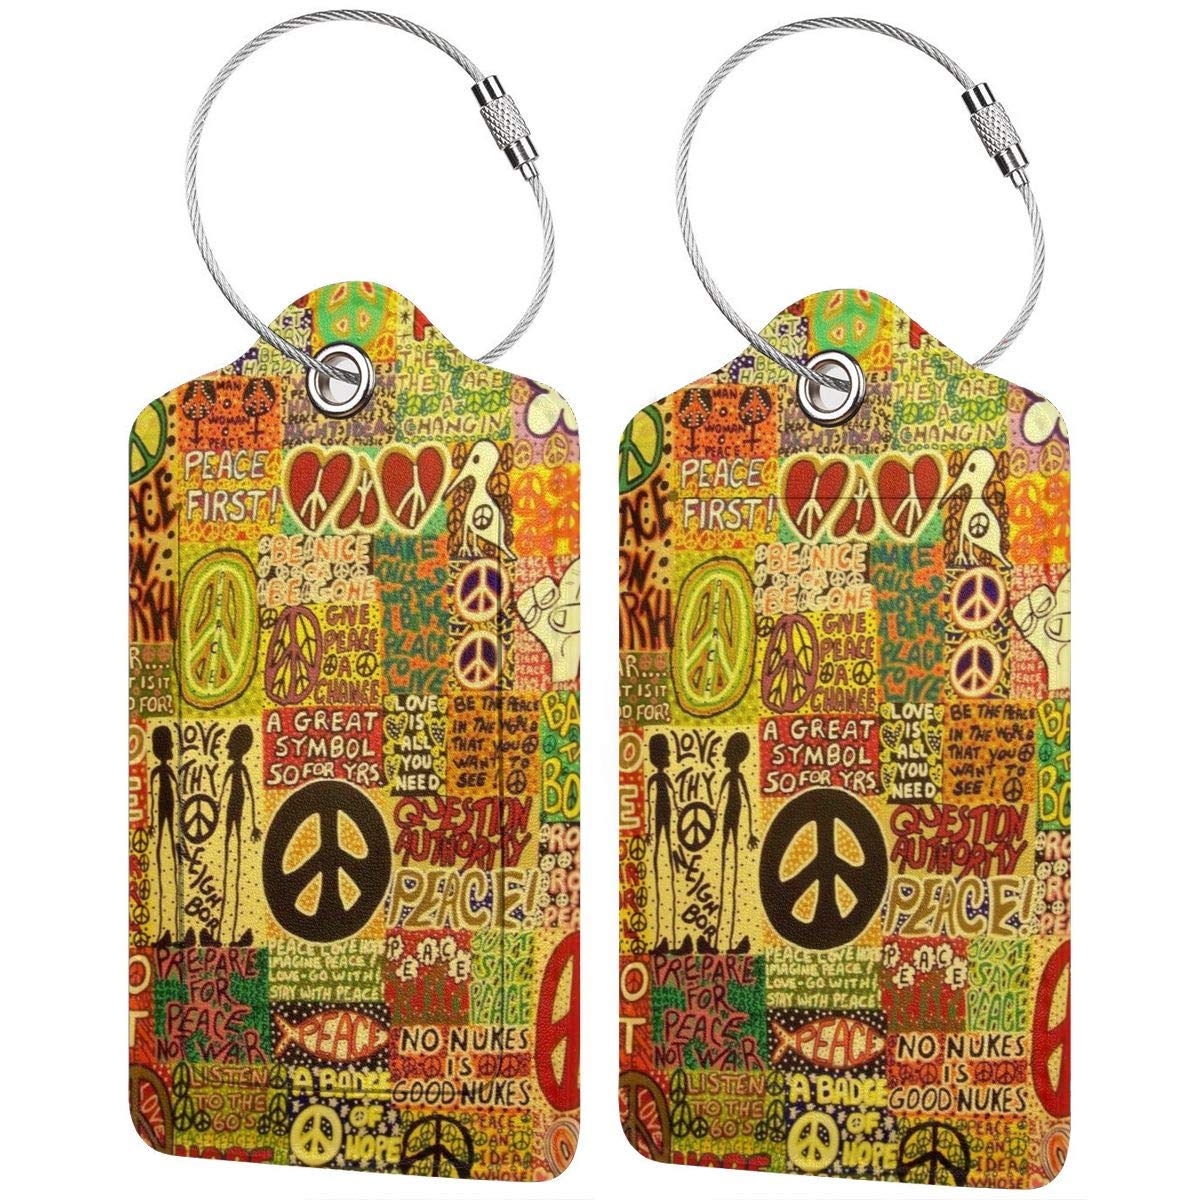 Godzigod Luggage Tags PU Leather Suitcase Card Tag with Stainless Steel Loop Travel Baggage Handbag Tag Labels Travel Accessories Peace Rocks Love Not War Hippie